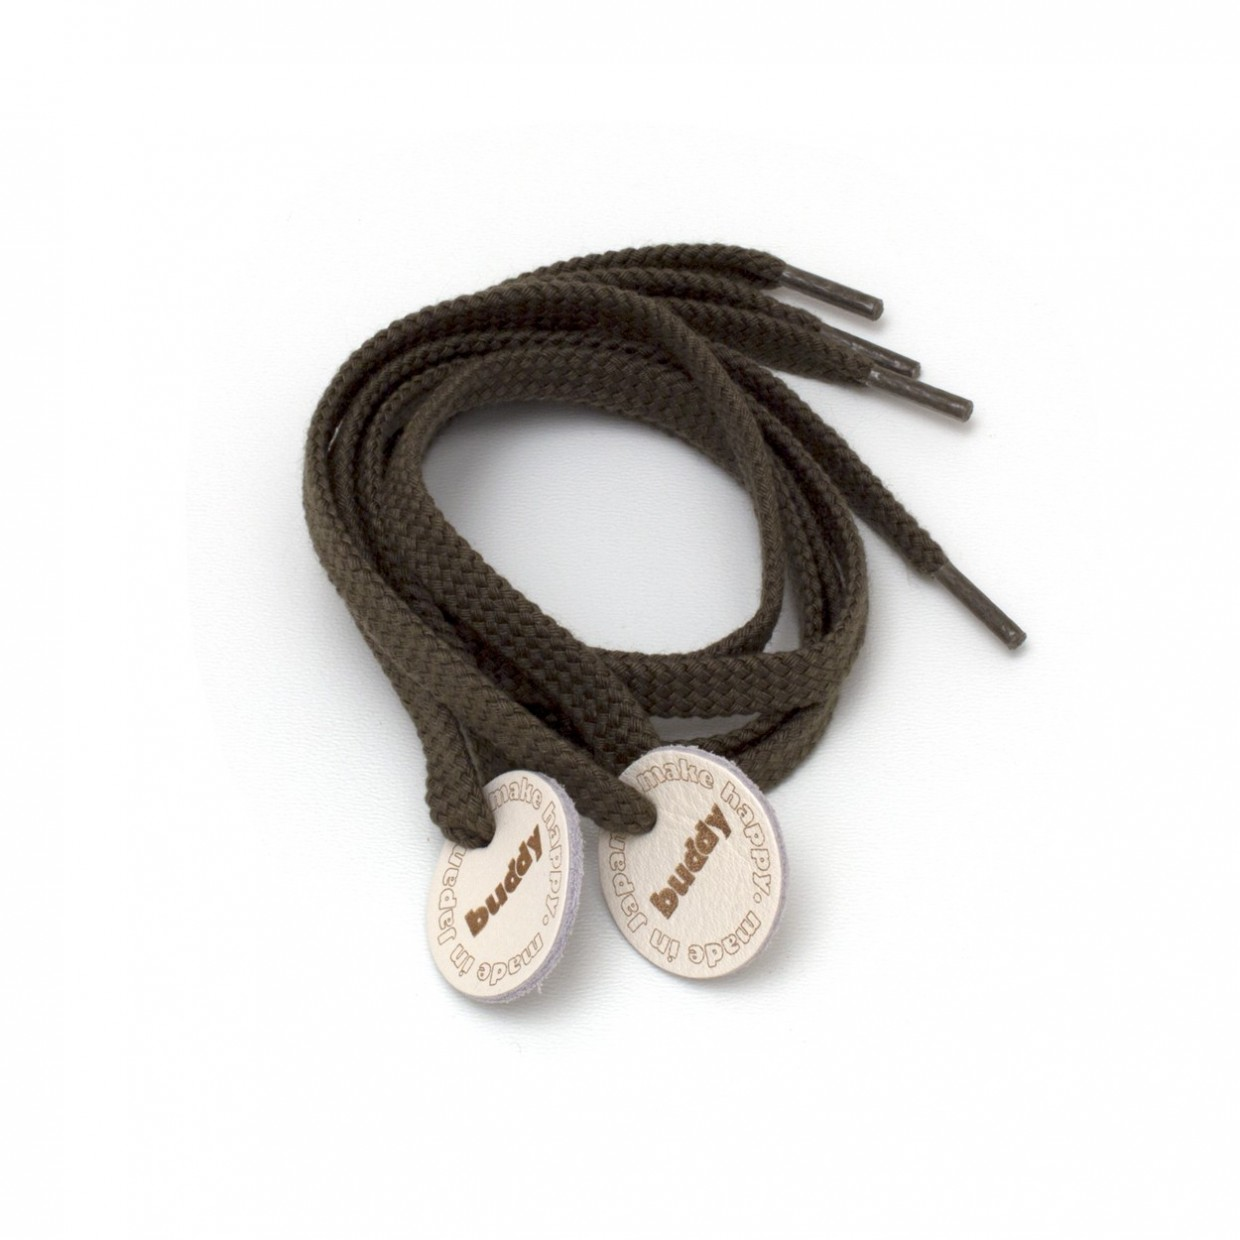 Shoelaces Olive with Leather patch 78 cm : 31 ""